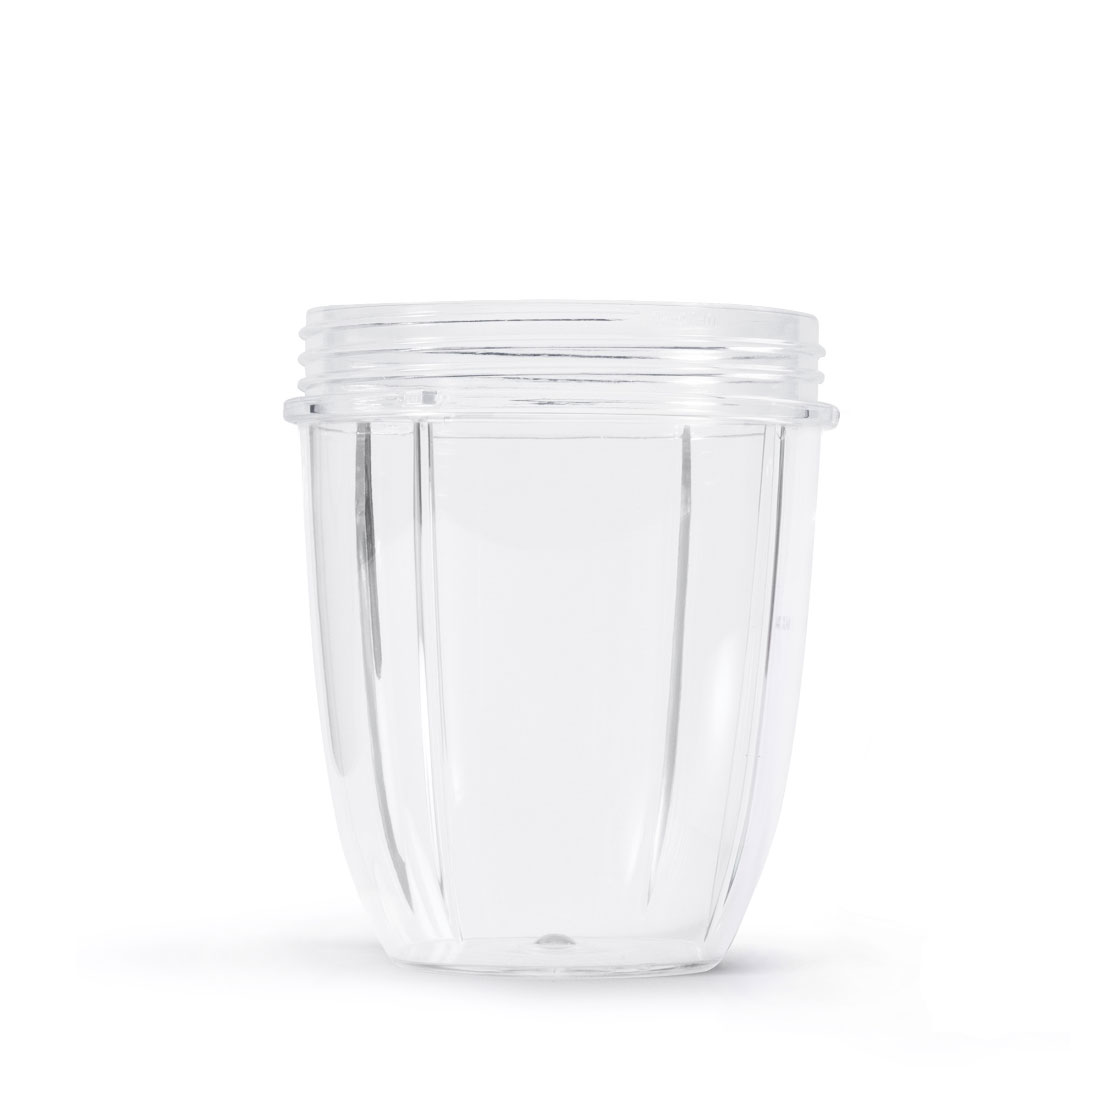 An image of NutriBullet 600/900 Short Cup